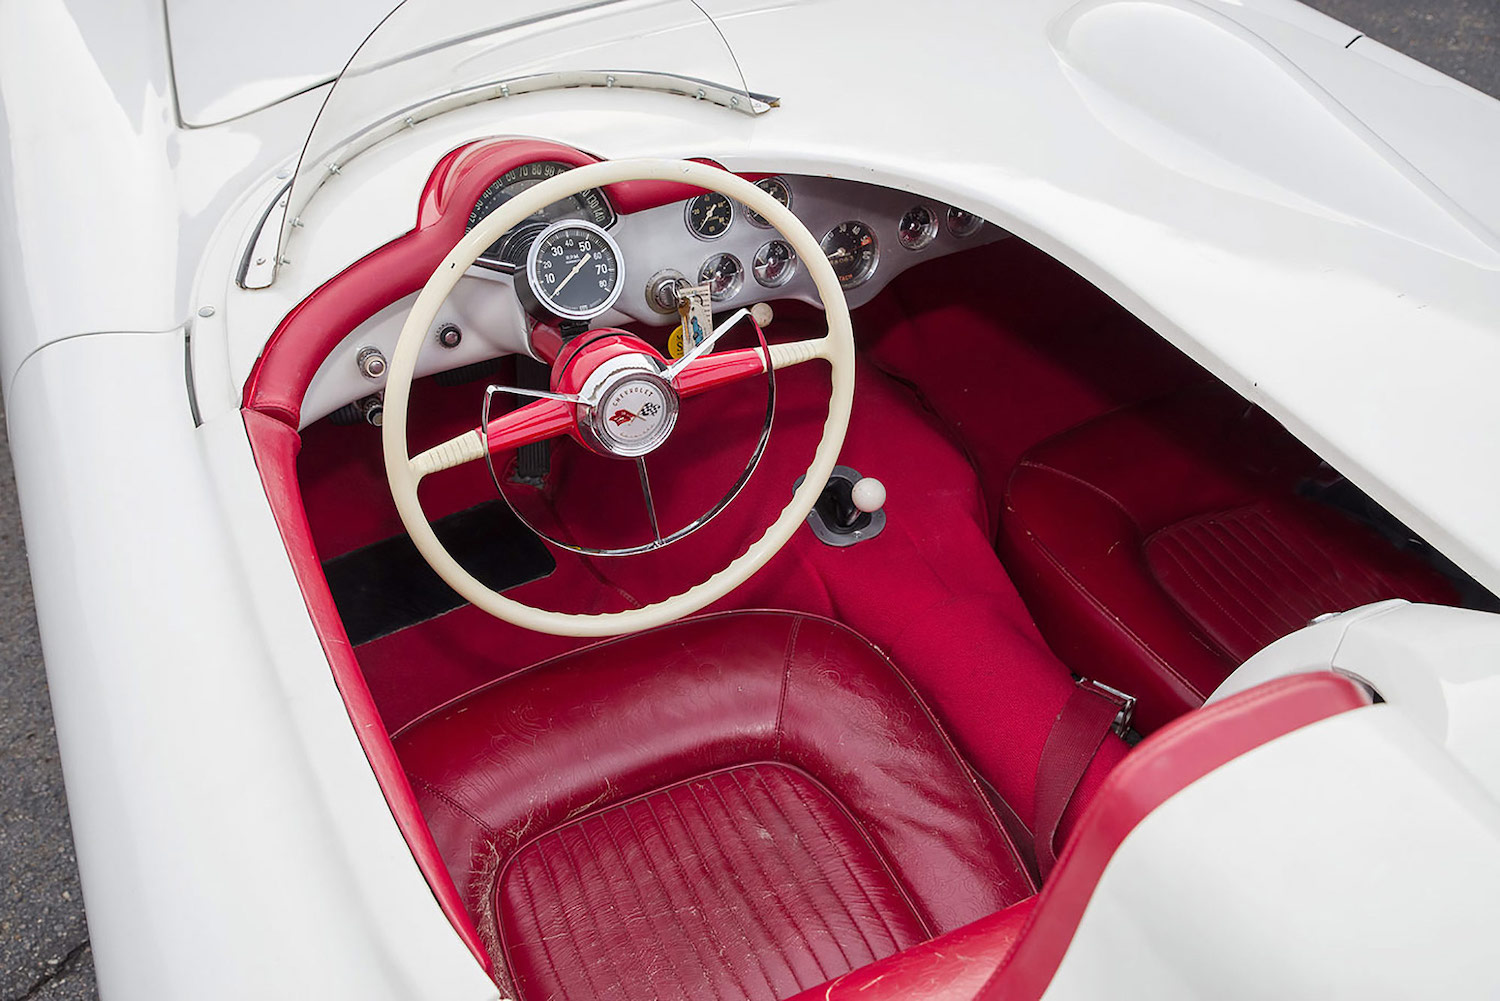 1954 Chevrolet Corvette Test Mule EX-87/5951 interior